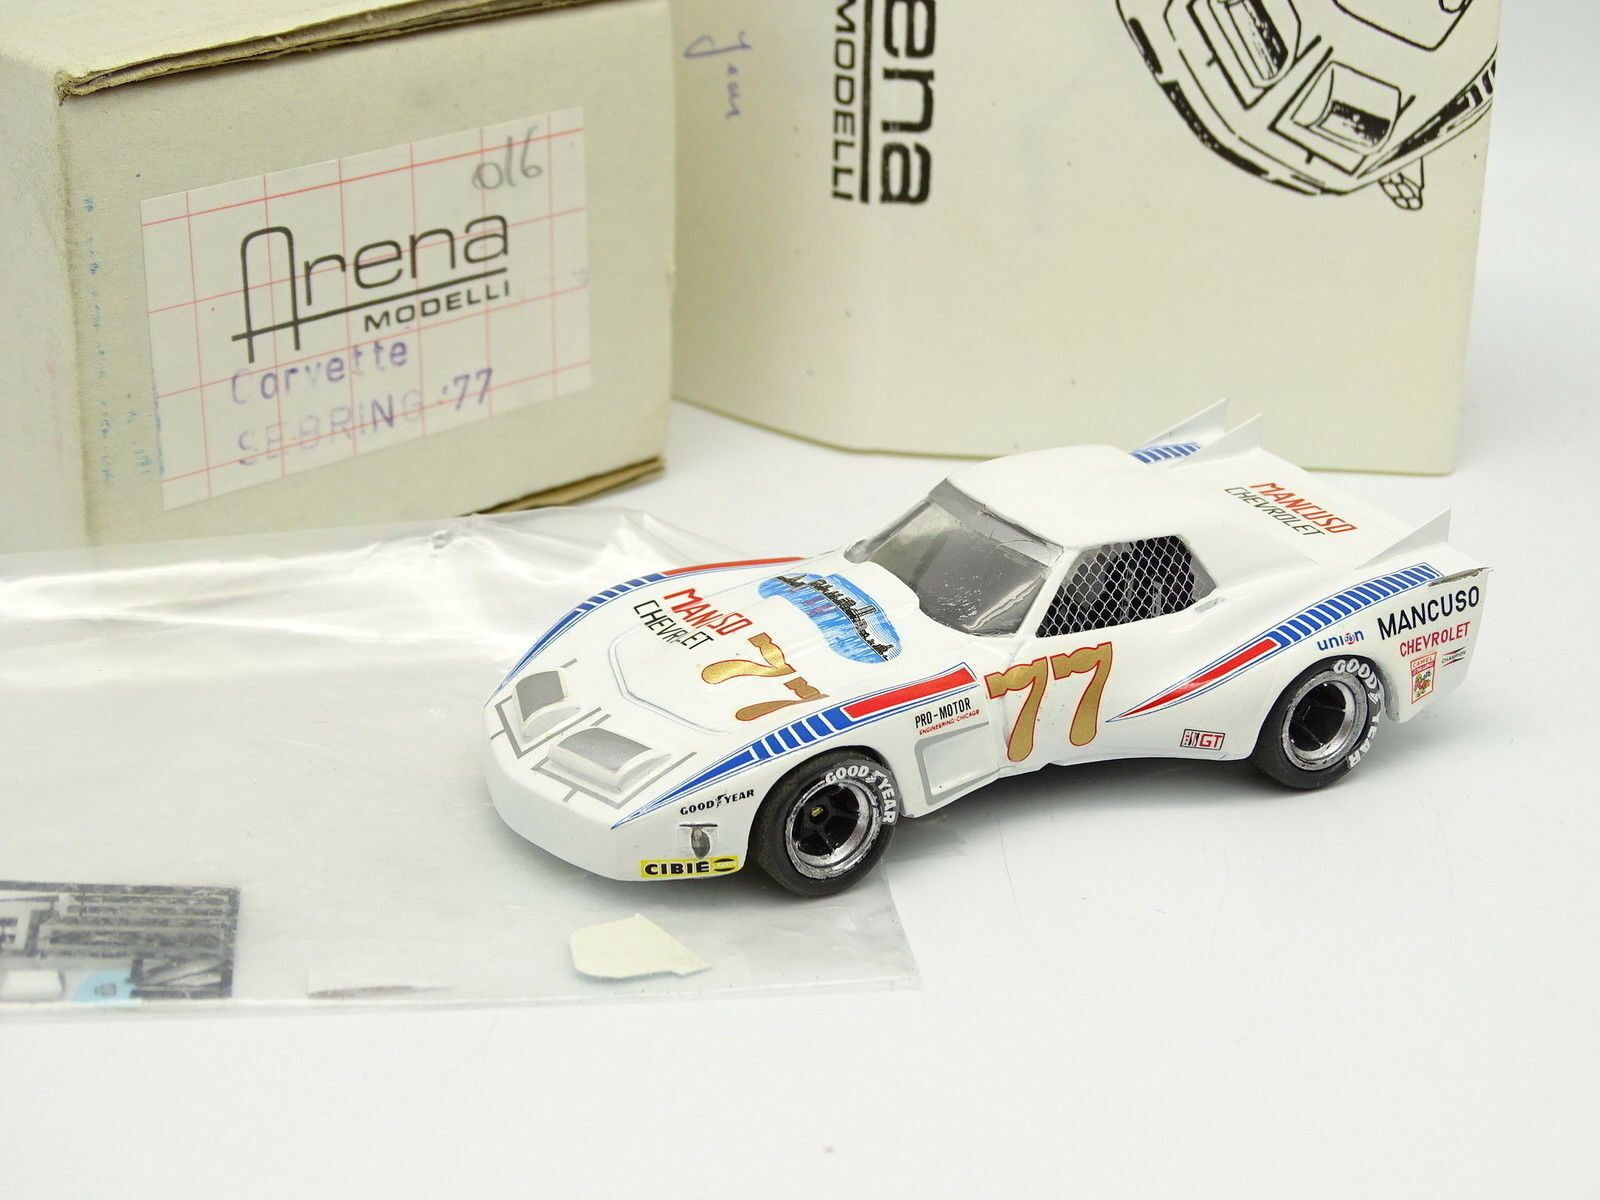 Arena set to assemble 1 43 - Chevrolet Corvette Sebring 1977